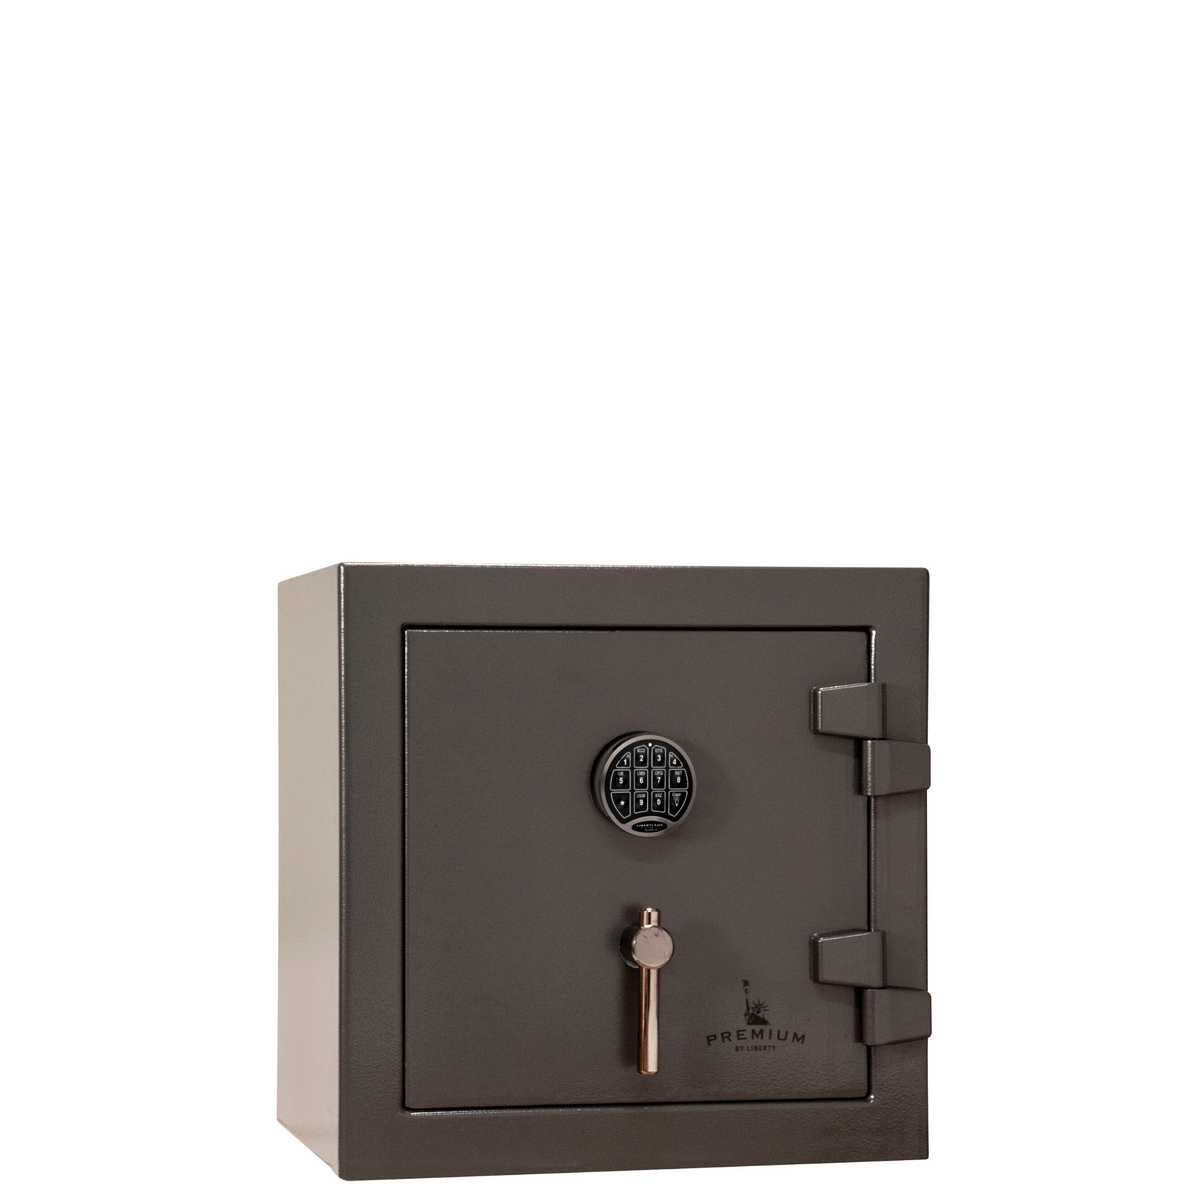 "Premium Home Series | 90 Minute Fire Protection | 5 | Dimensions: 24""(H) x 24""(W) x 22.5""(D) 